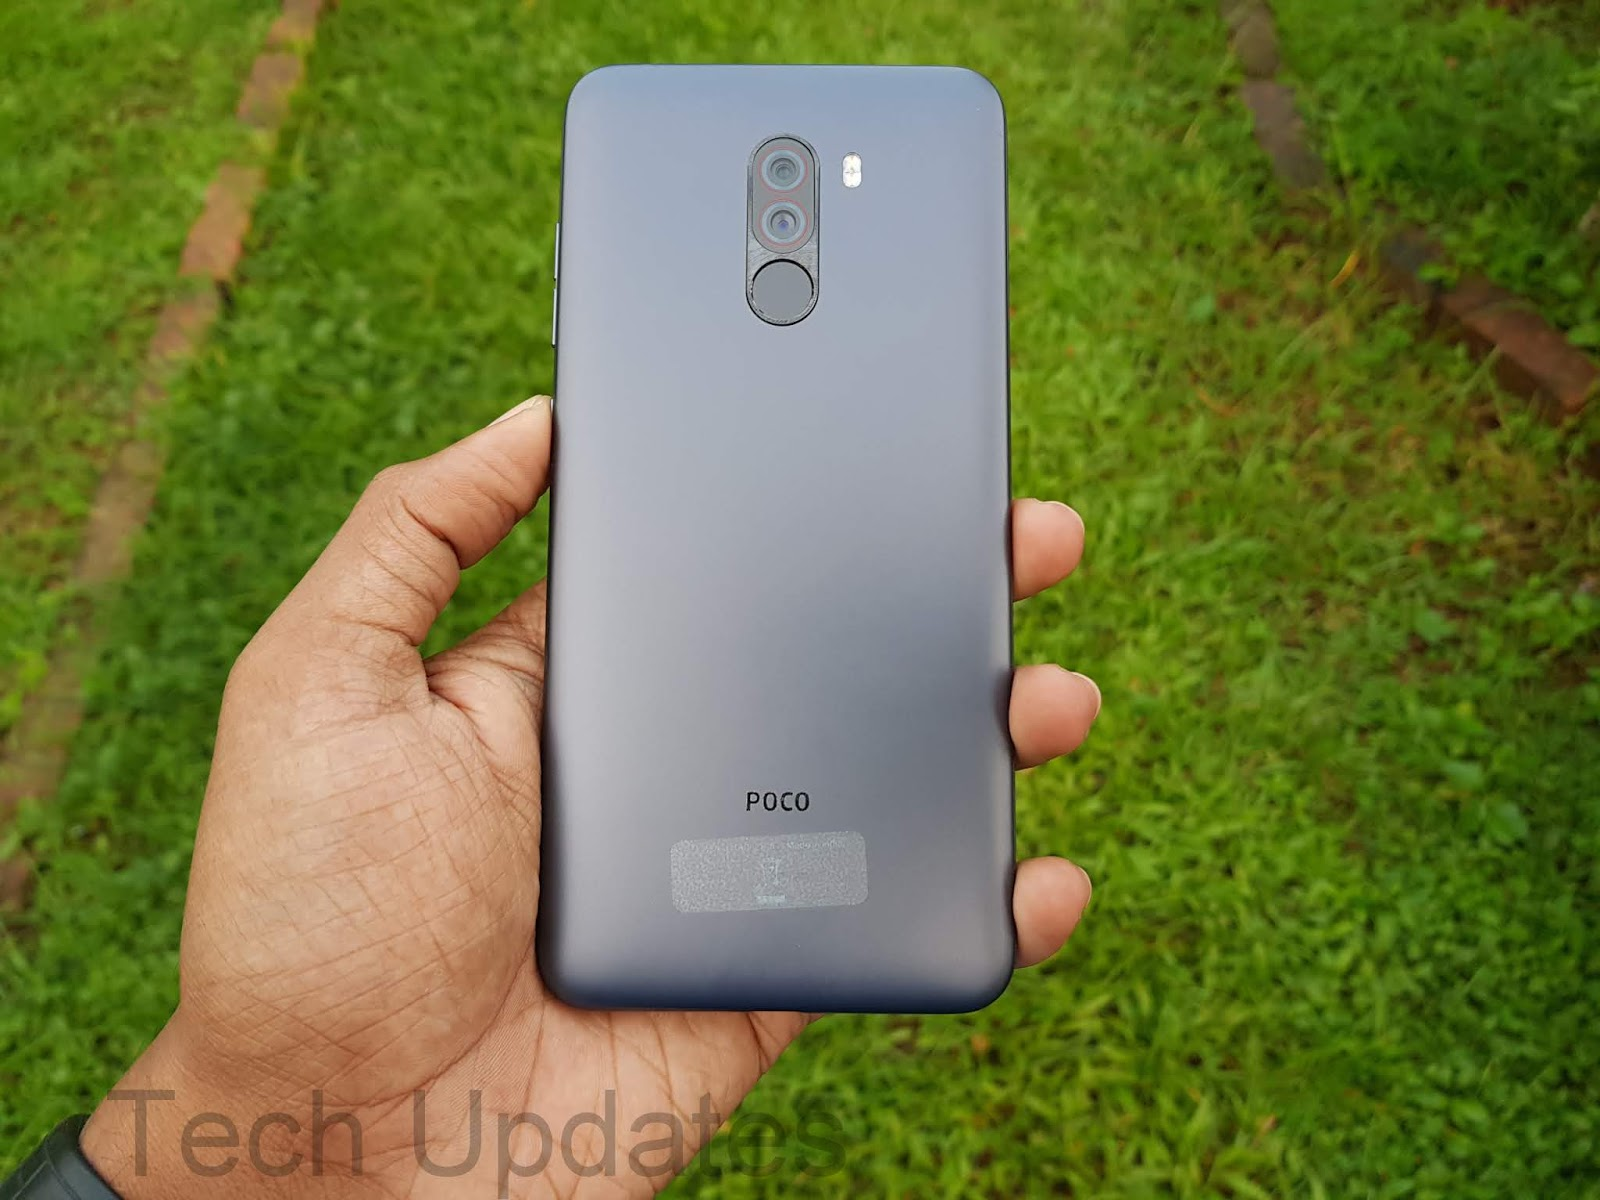 Poco F1 Photo Gallery & First Look - Tech Updates